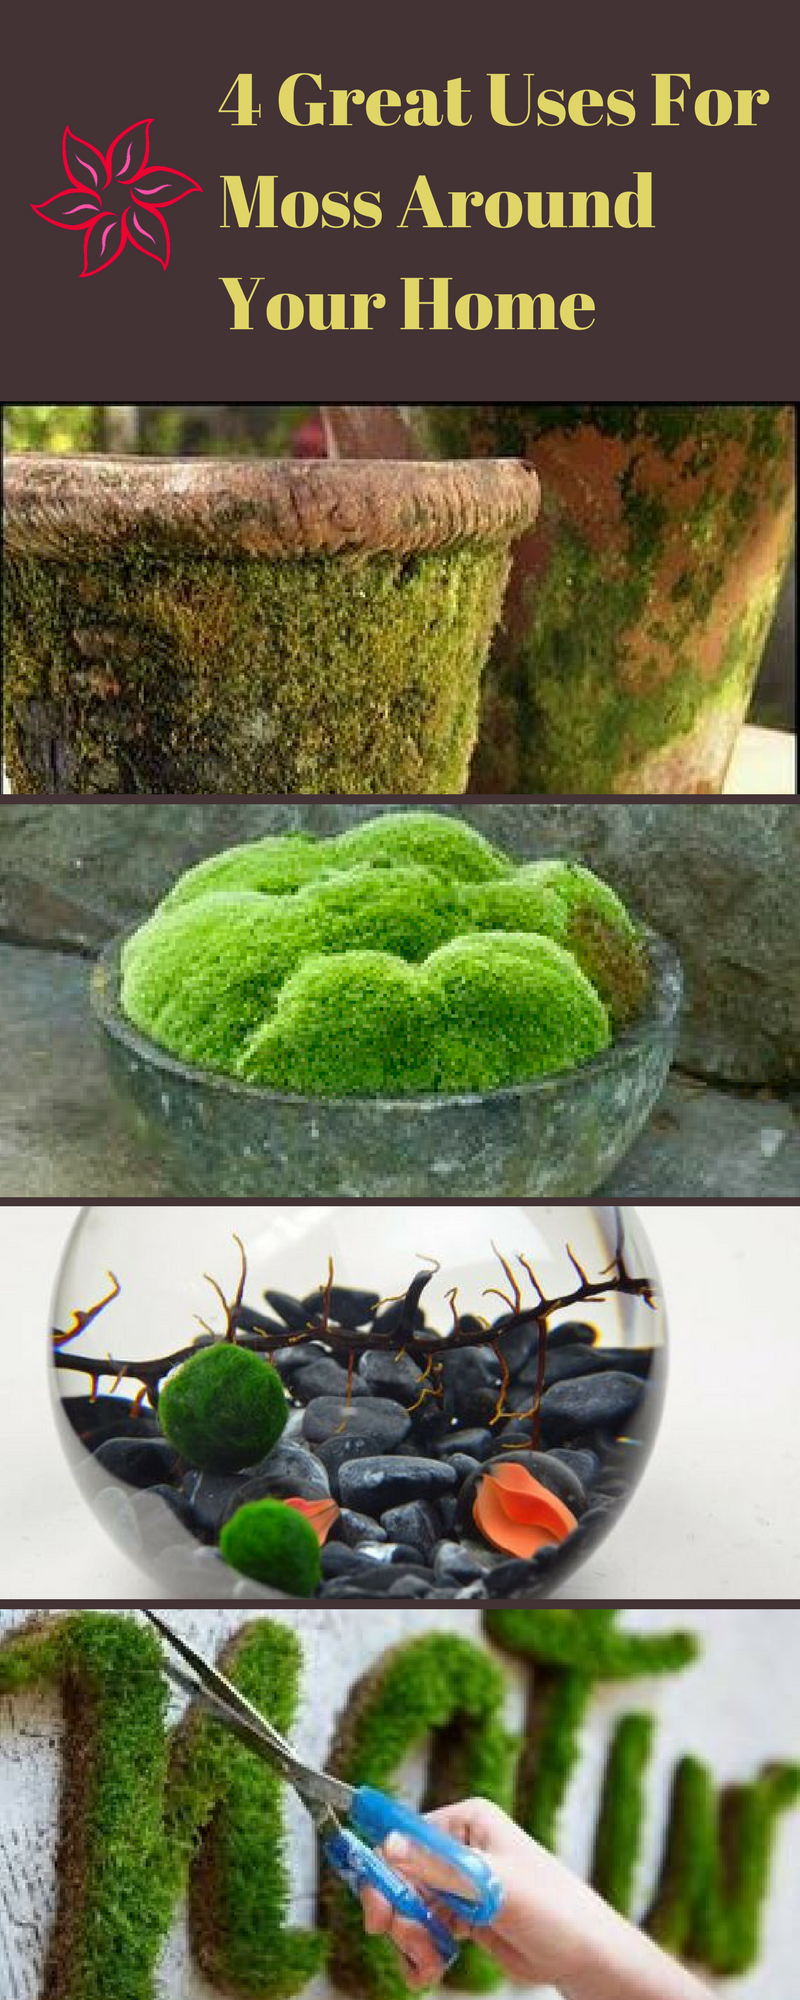 How To Grow Moss On Pots And Rocks | Gardens, Container water ...